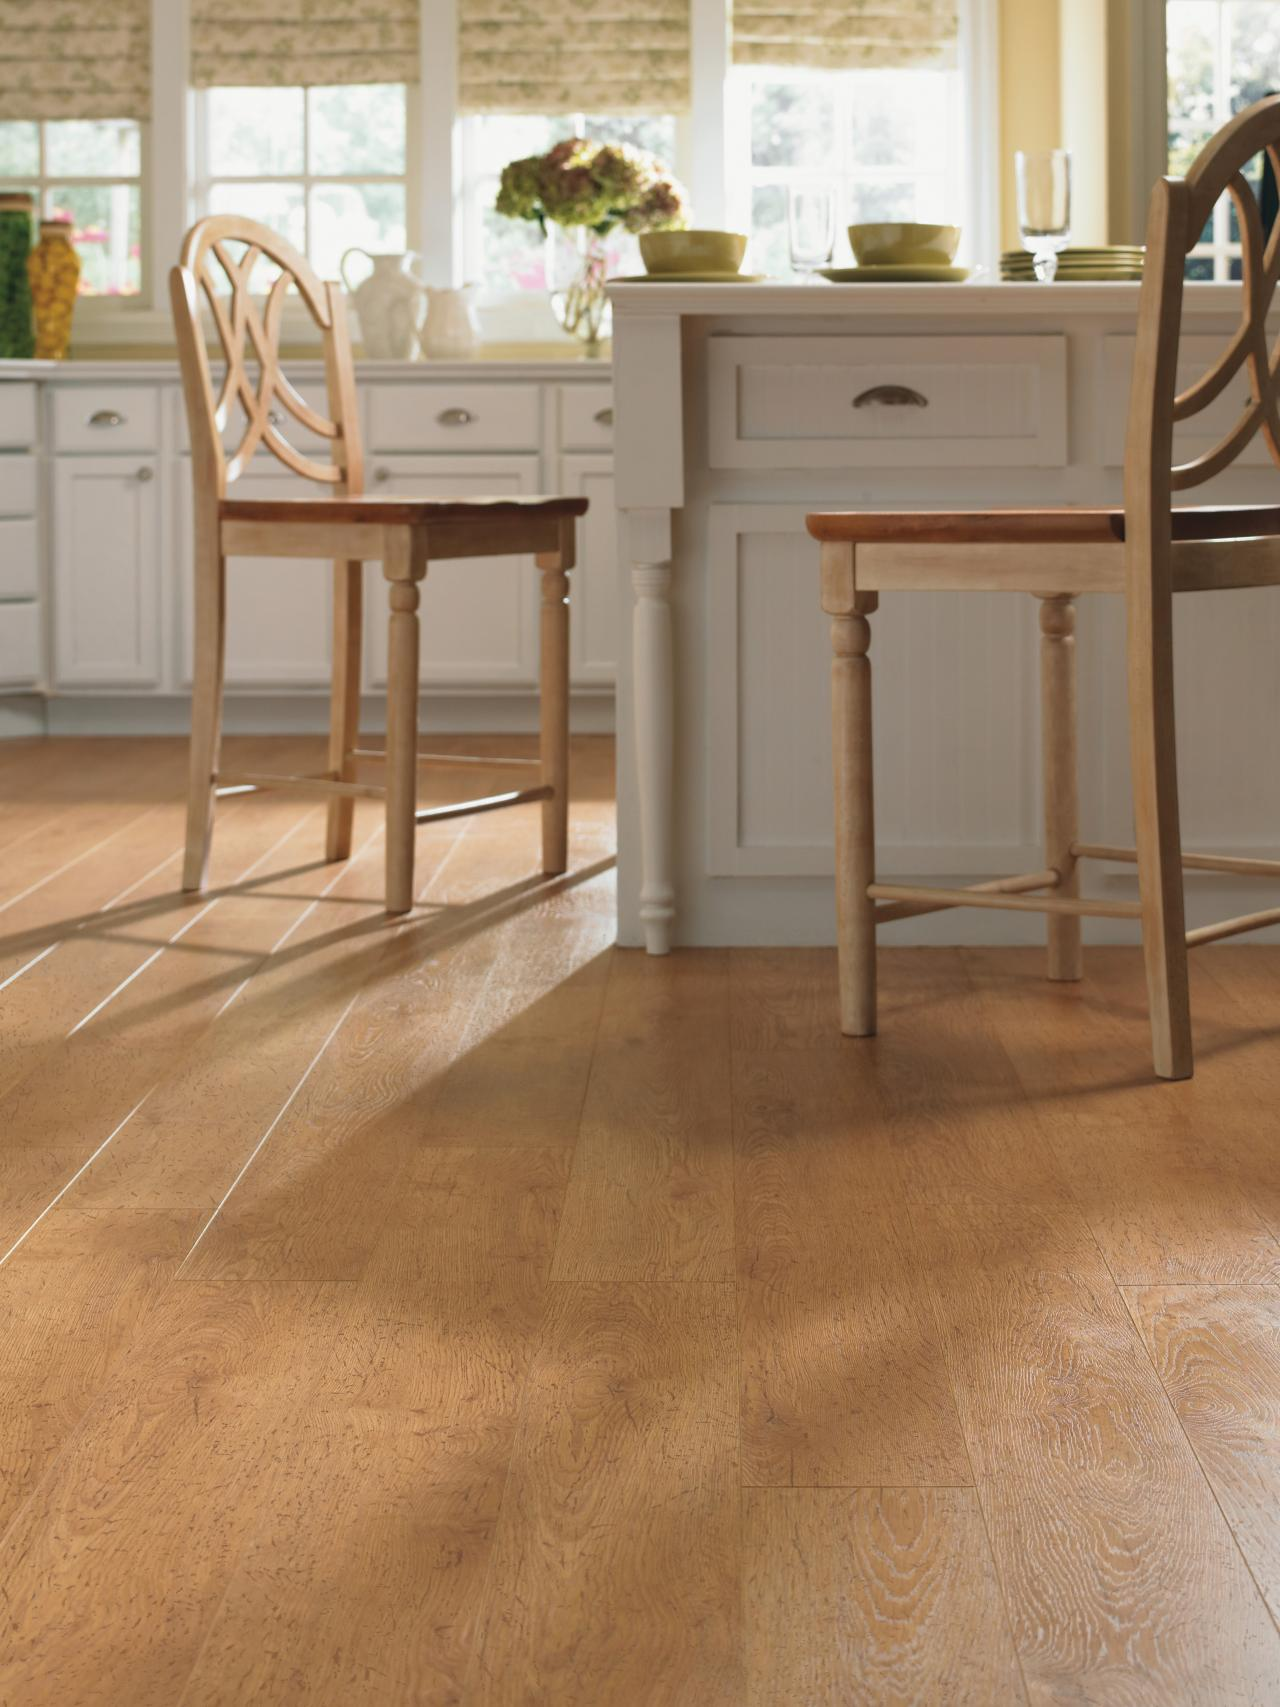 Kitchen Tile Laminate Flooring Laminate Flooring In The Kitchen Hgtv